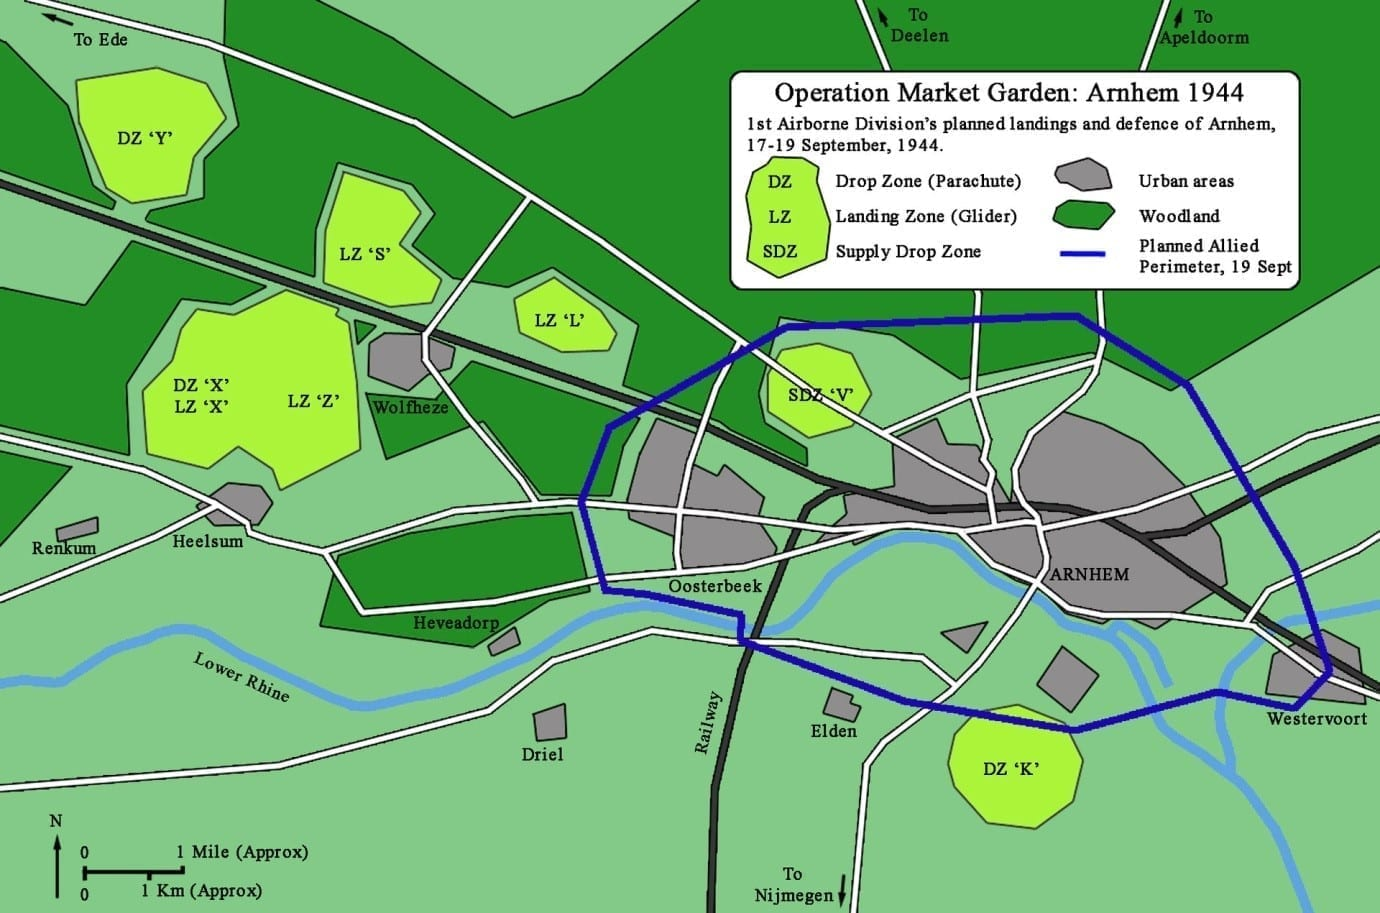 operation market garden - arnhem